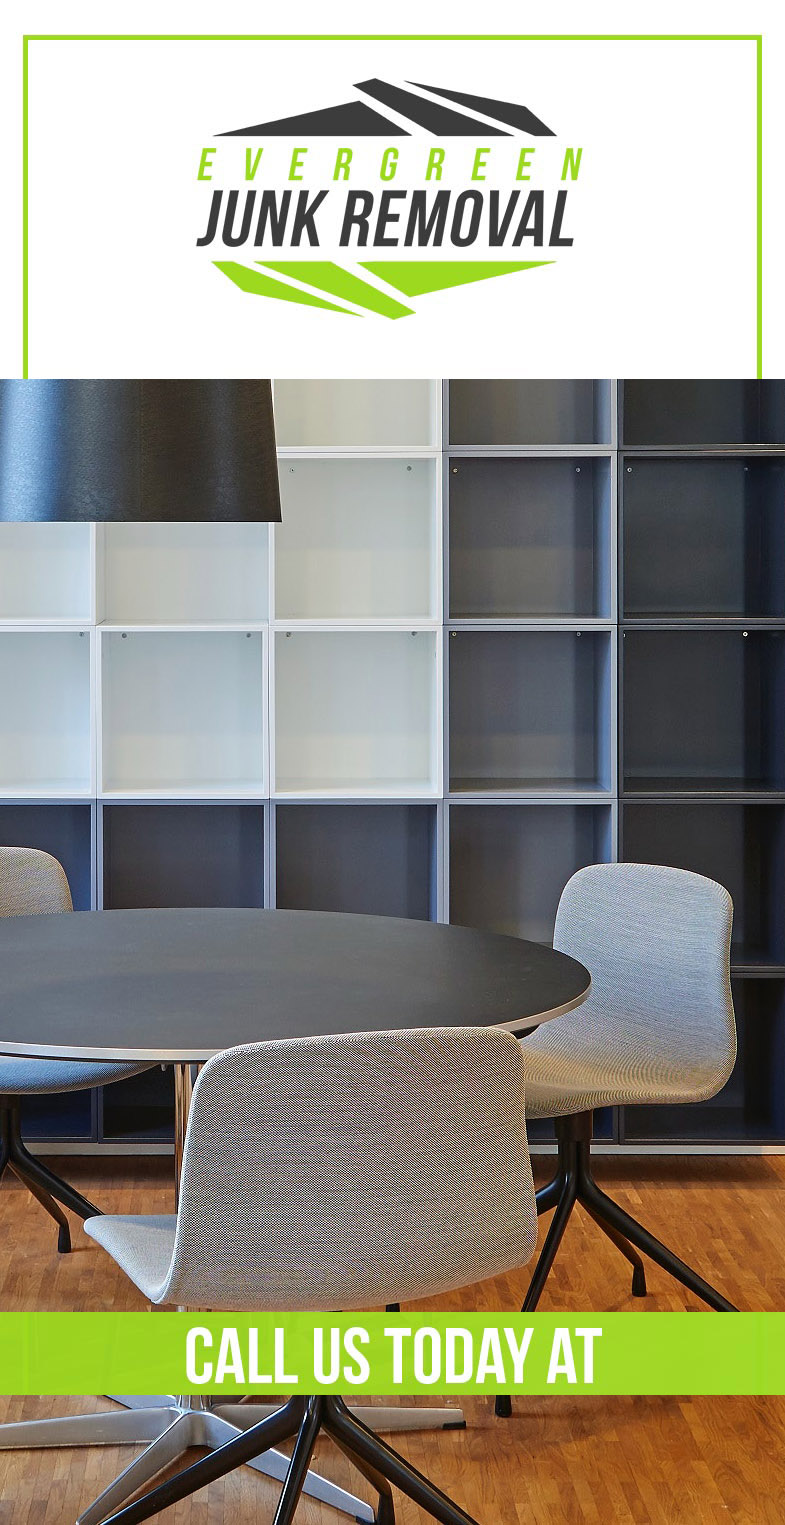 Office Cleaning Services Lake Clarke Shores FL Commercial Cleaning Service